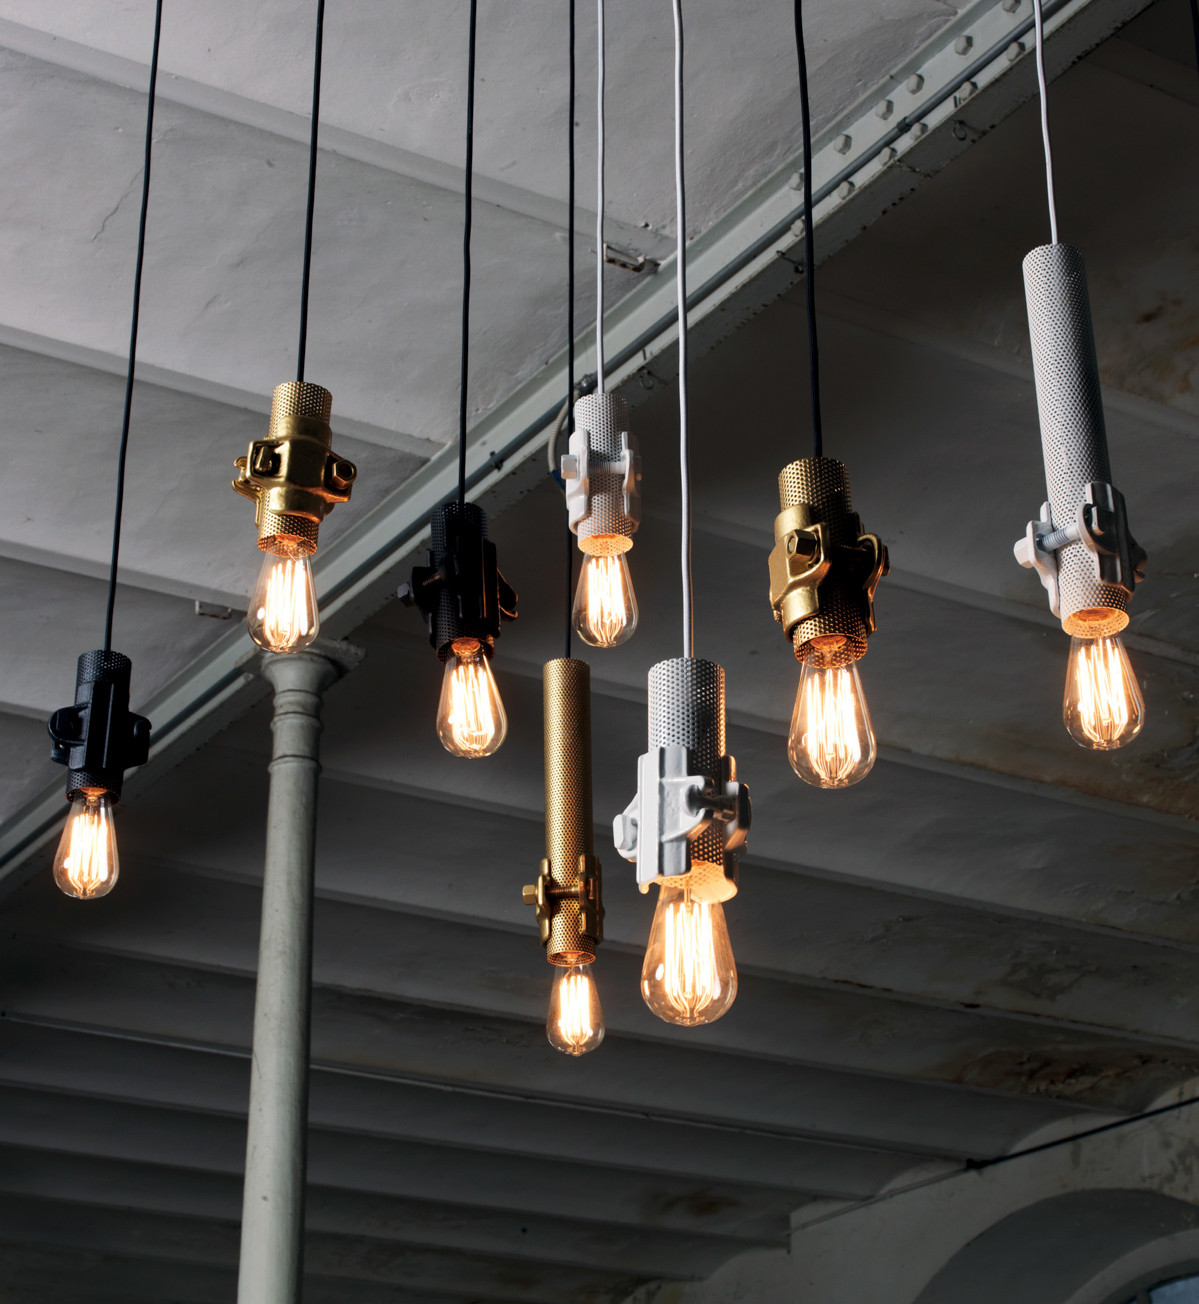 Global Lighting Launches Stunning New Collection Design Milk